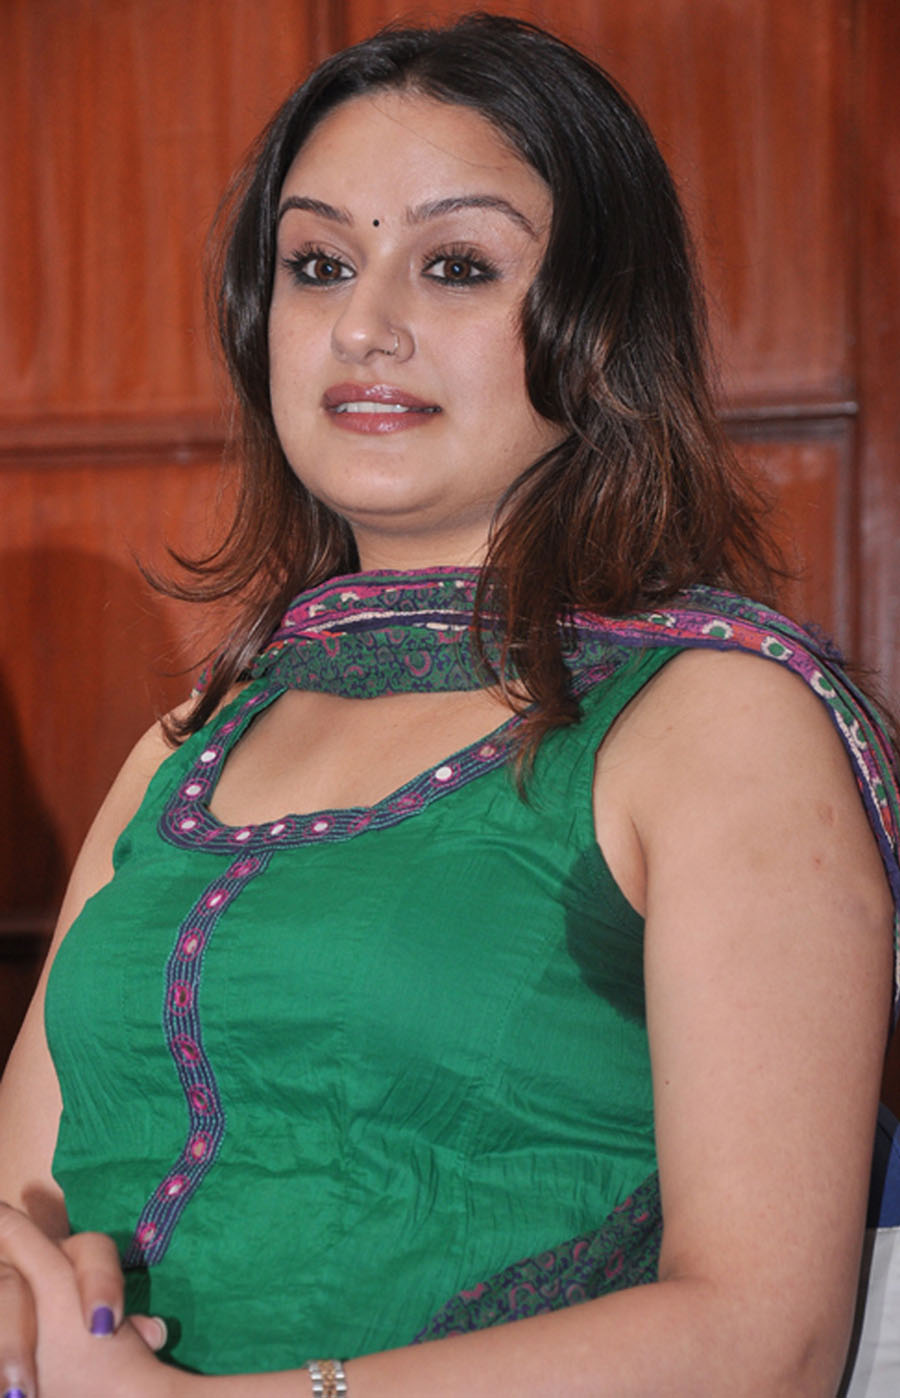 sonia agarwal hotsonia agarwal movie list, sonia agarwal bio, sonia agarwal, sonia agarwal hot, sonia agarwal whatsapp video, sonia agarwal facebook, sonia agarwal mms, sonia agarwal marriage photos, sonia agarwal death, sonia agarwal hot photos, sonia agarwal leaked